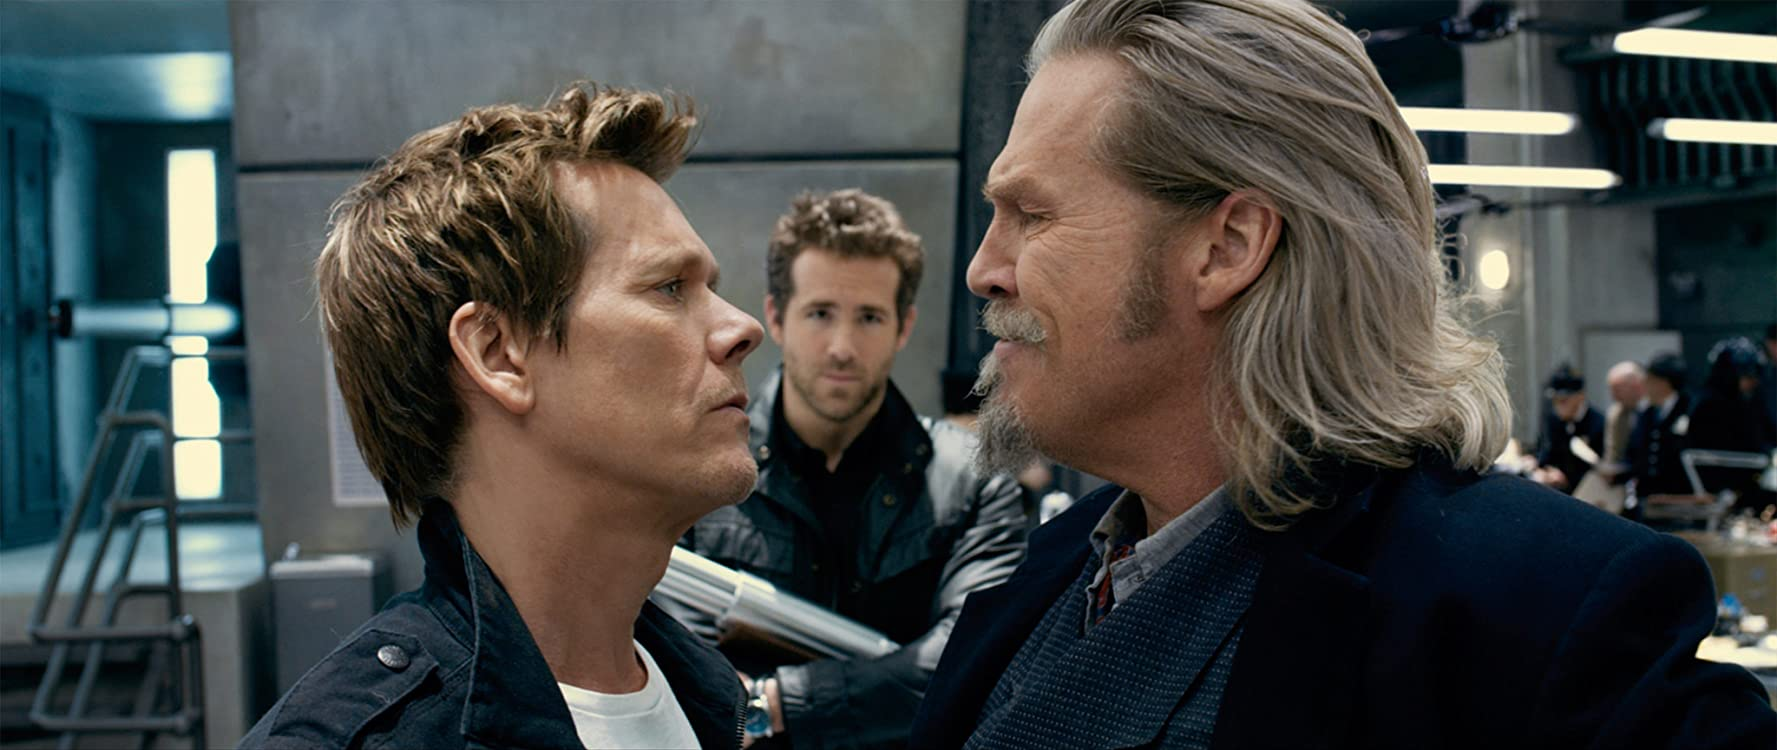 Kevin Bacon, Jeff Bridges, and Ryan Reynolds in R.I.P.D. (2013)